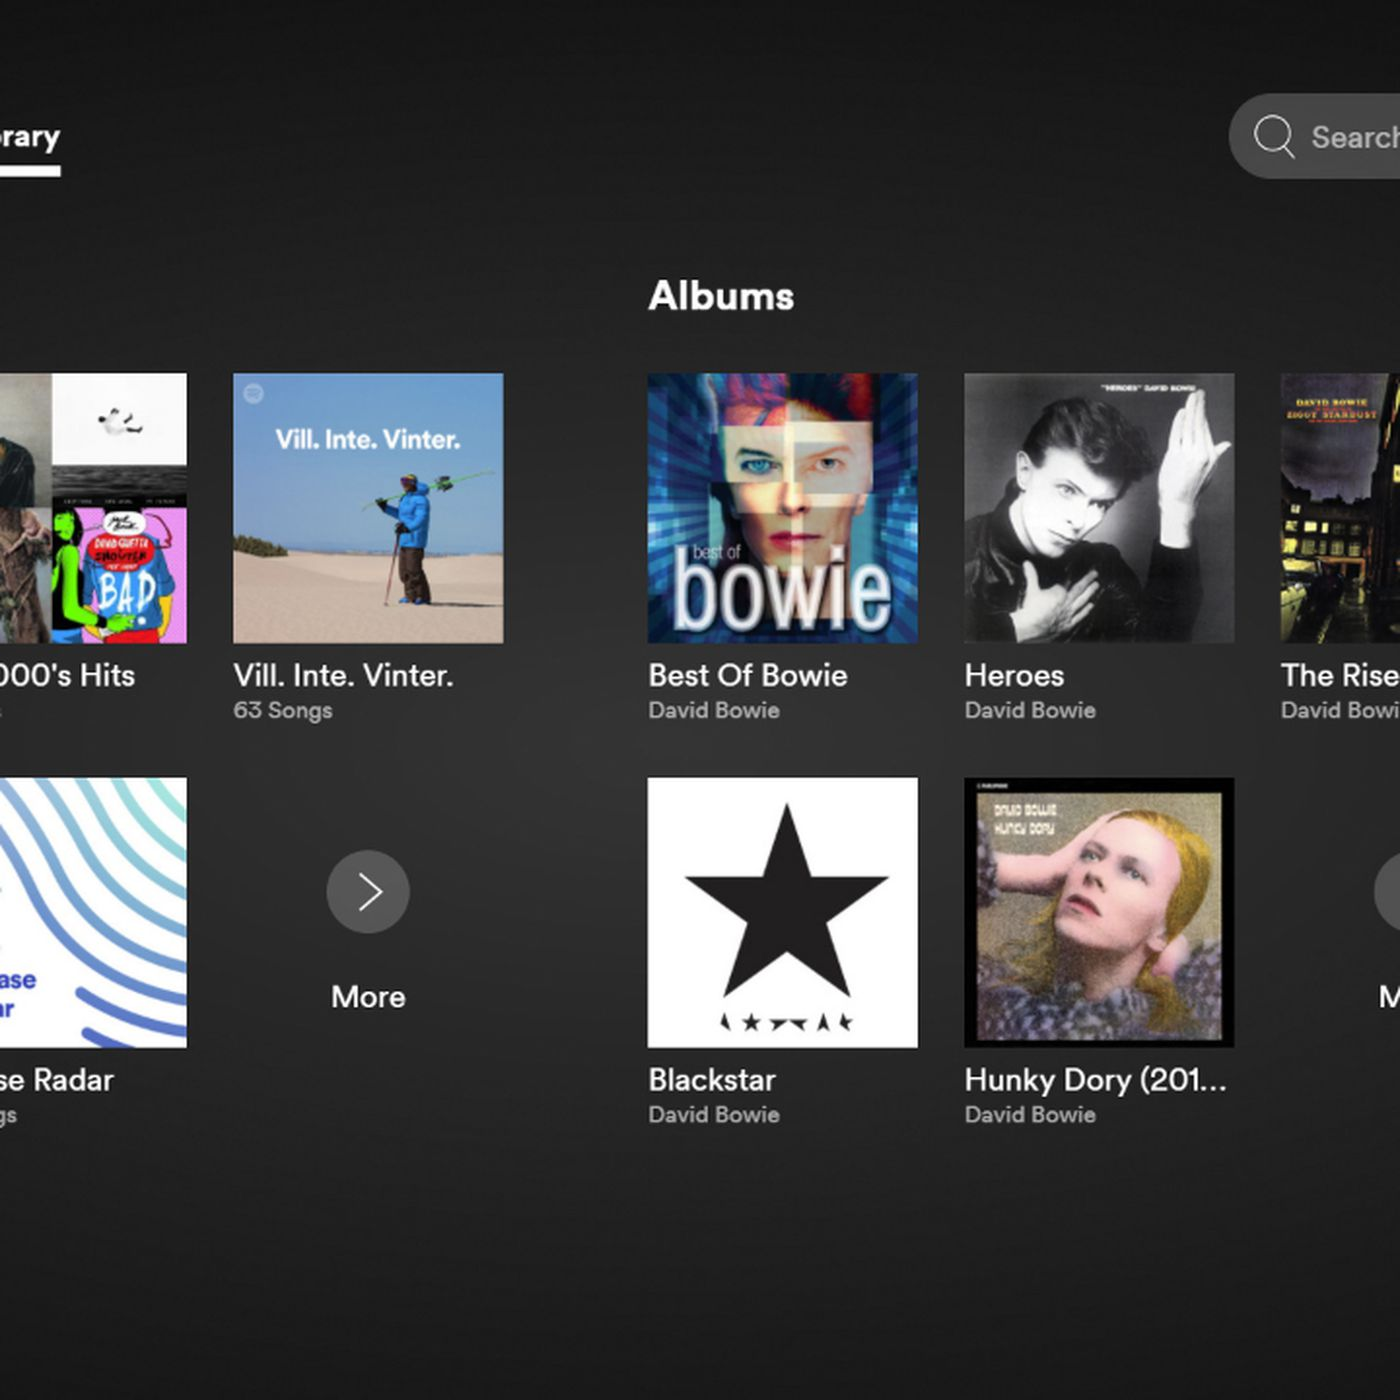 Spotify returns to Roku devices starting today - The Verge